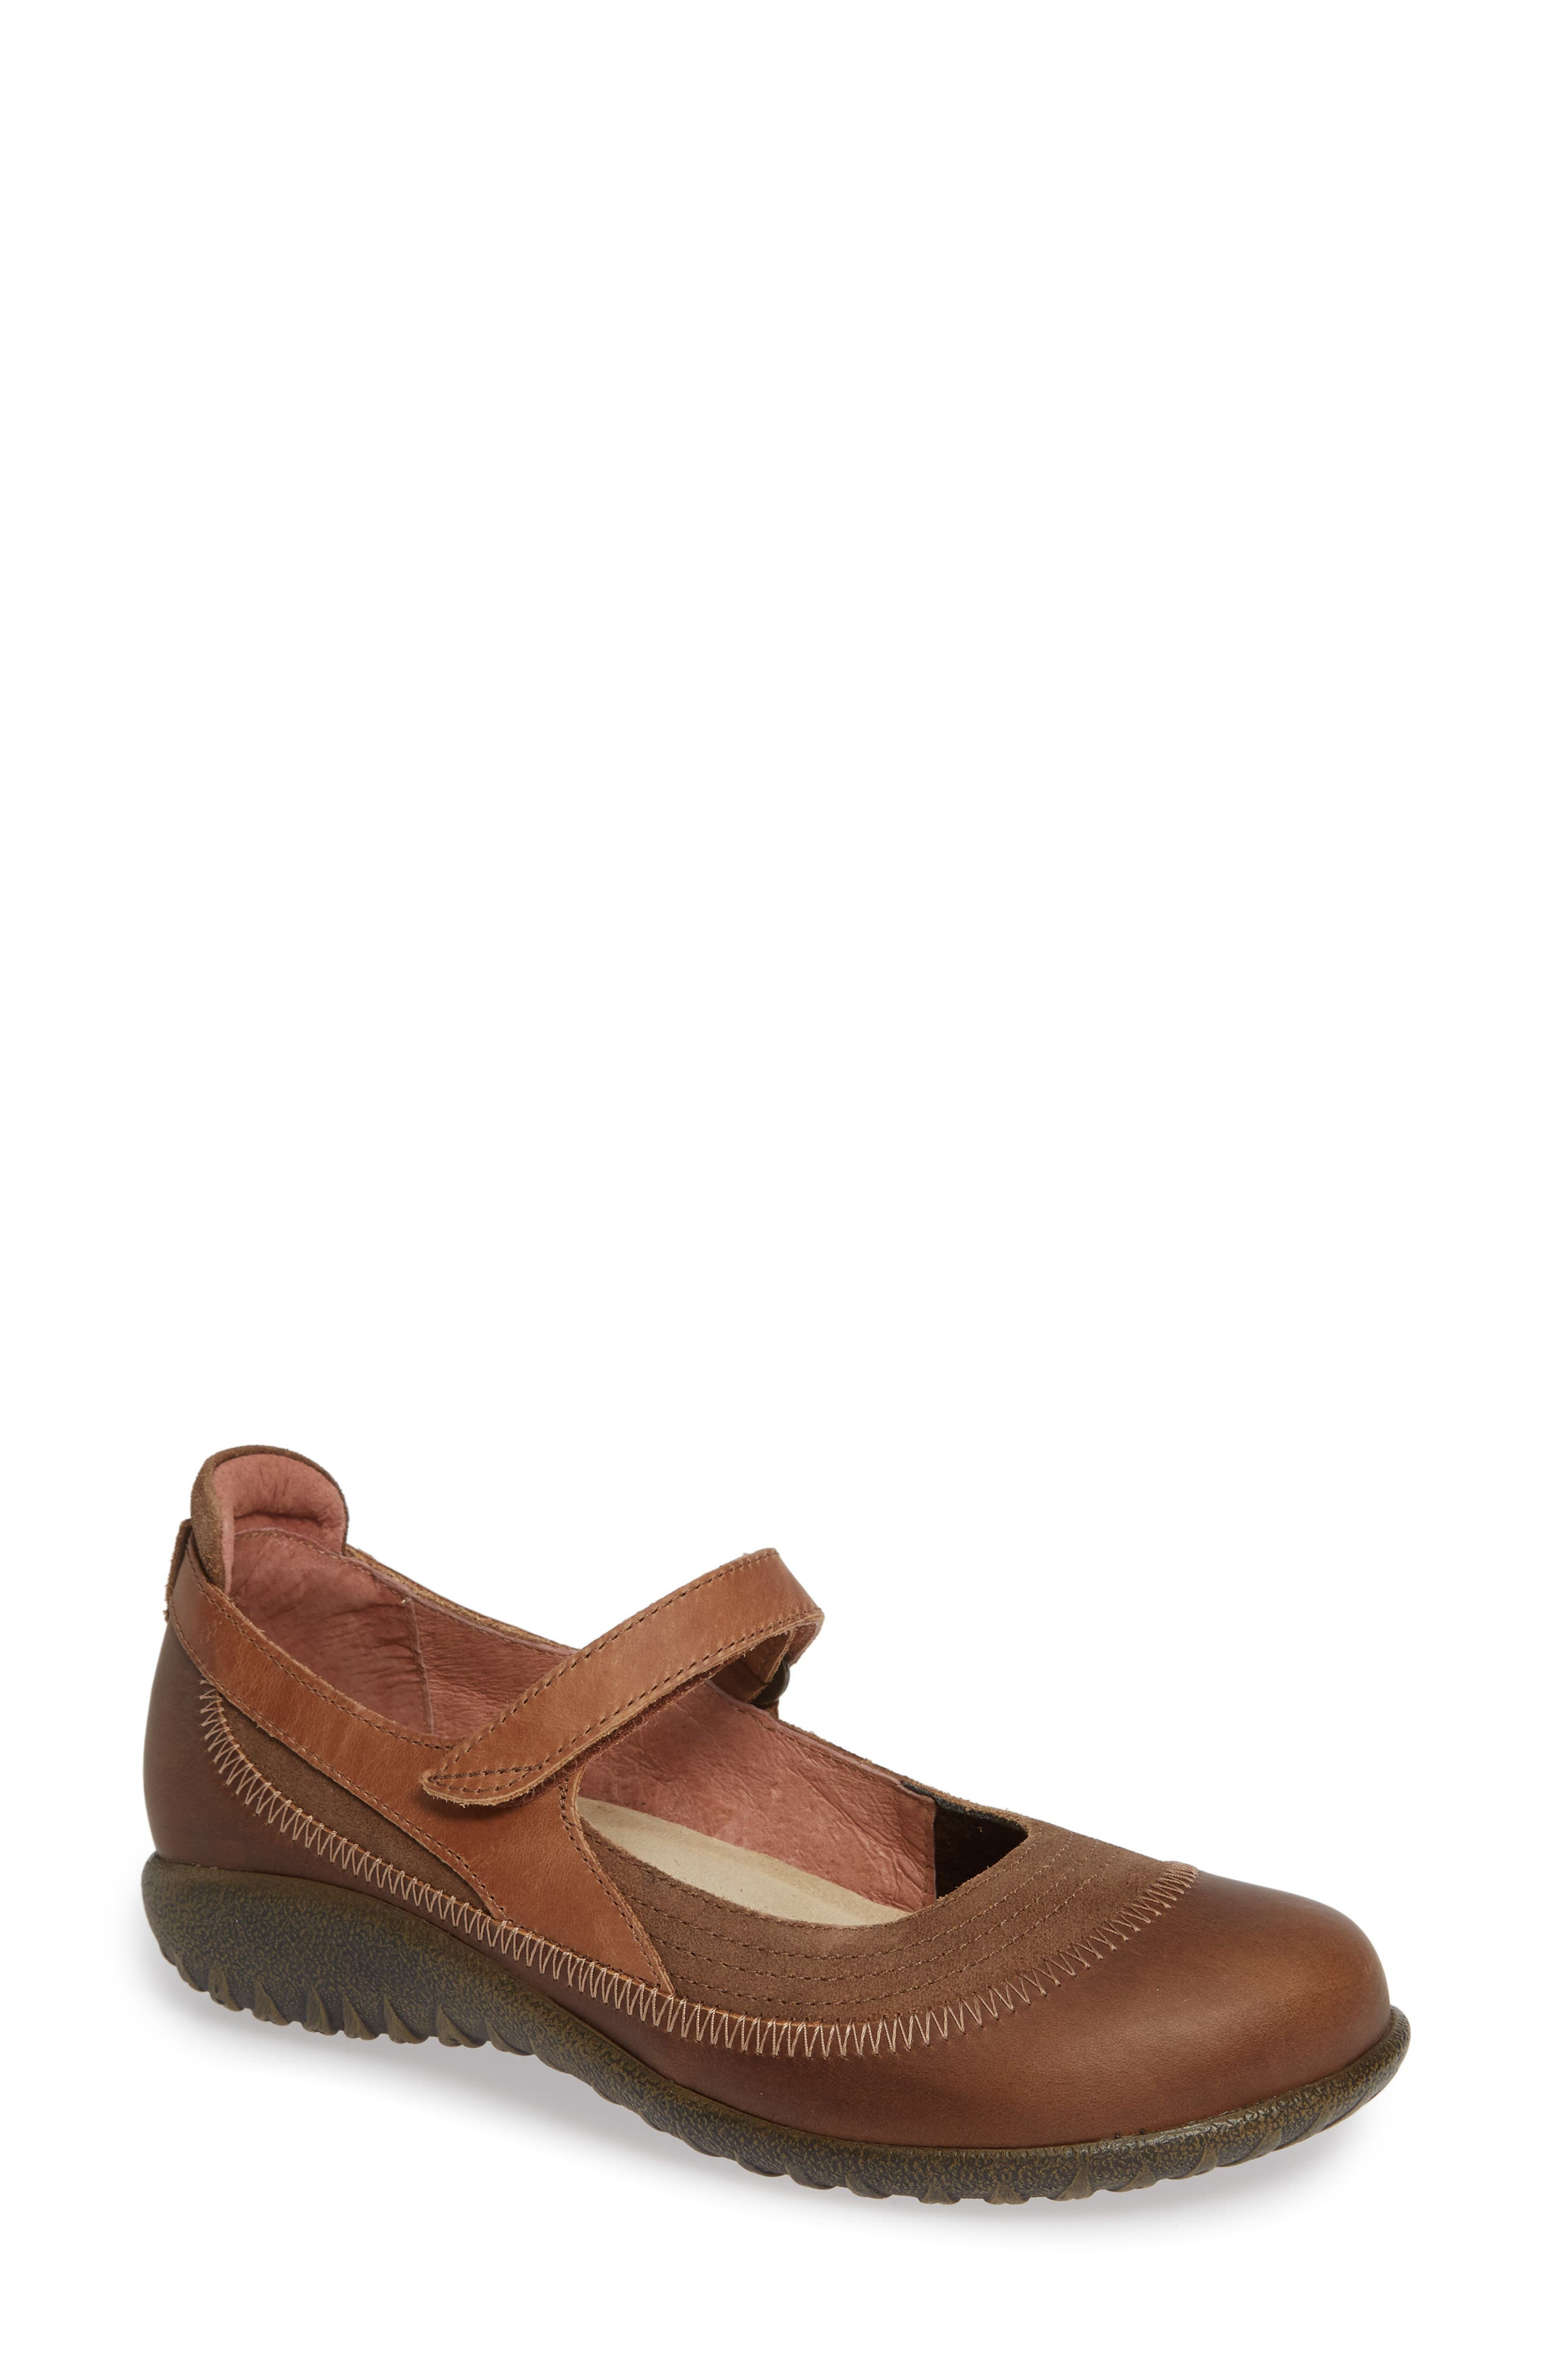 'Kirei' Mary Jane,                             Main thumbnail 1, color,                             ANTIQUE/ SADDLE LEATHER/ SUEDE